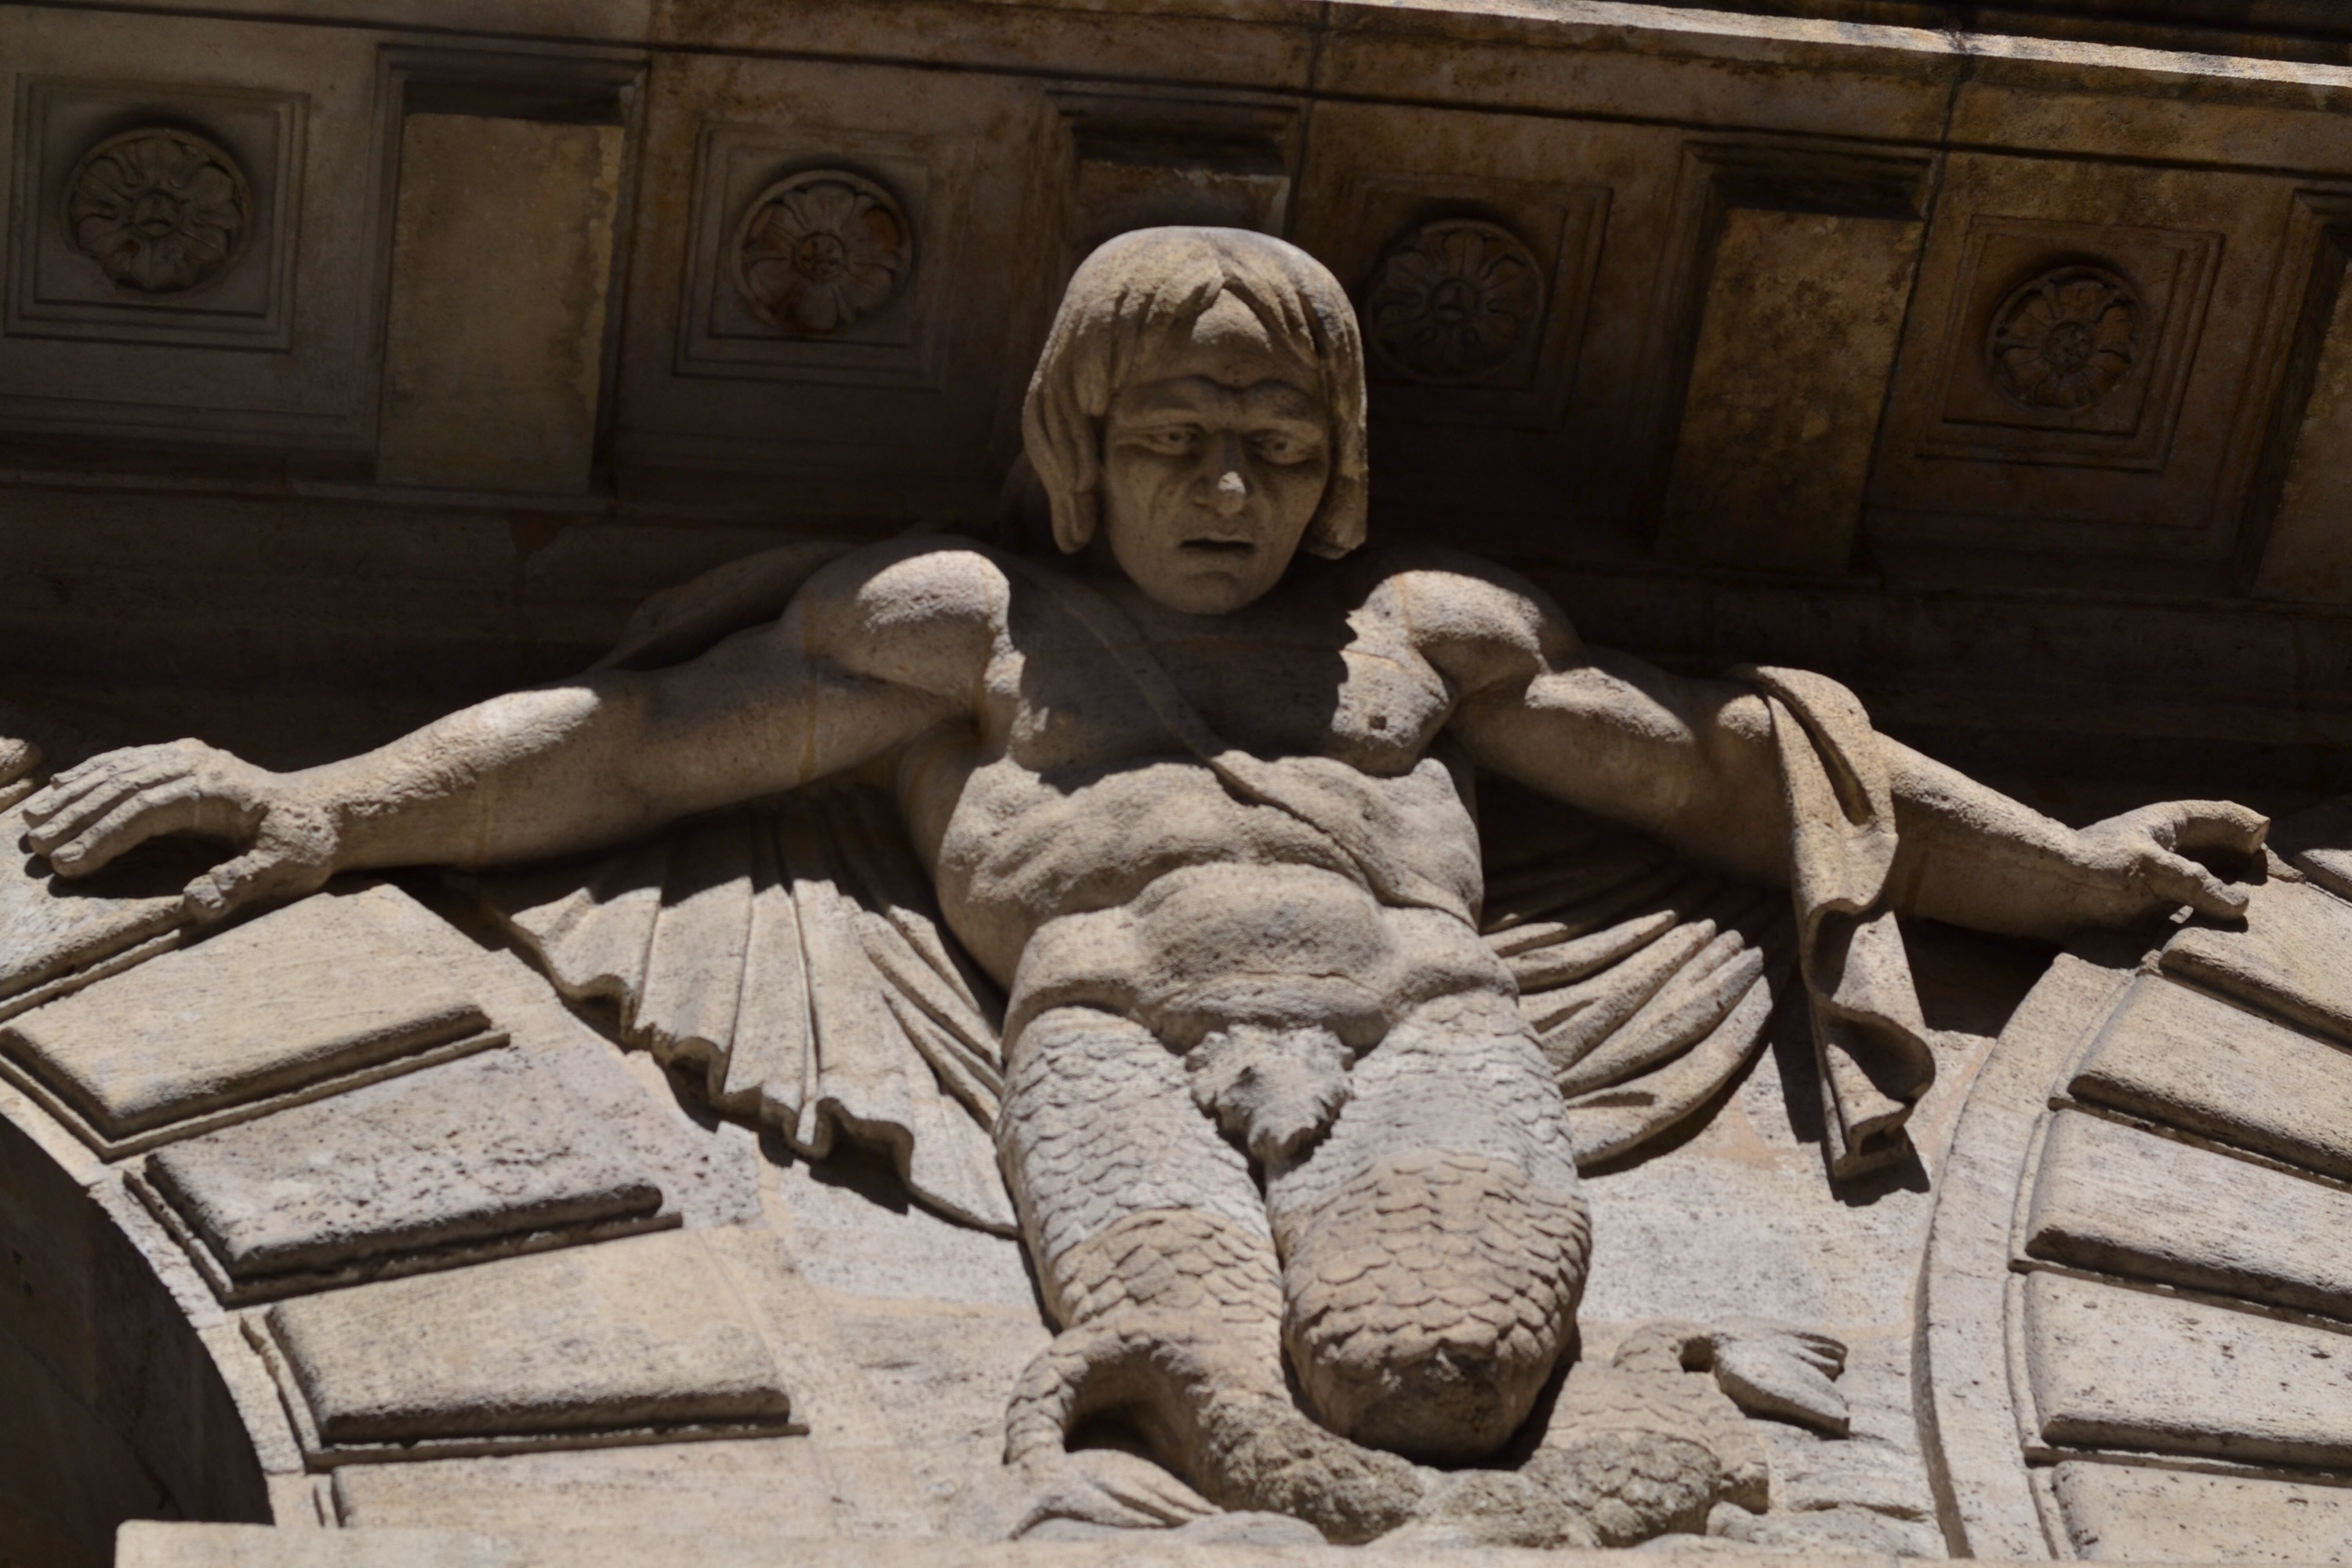 Merman sculpture Bordeaux France building